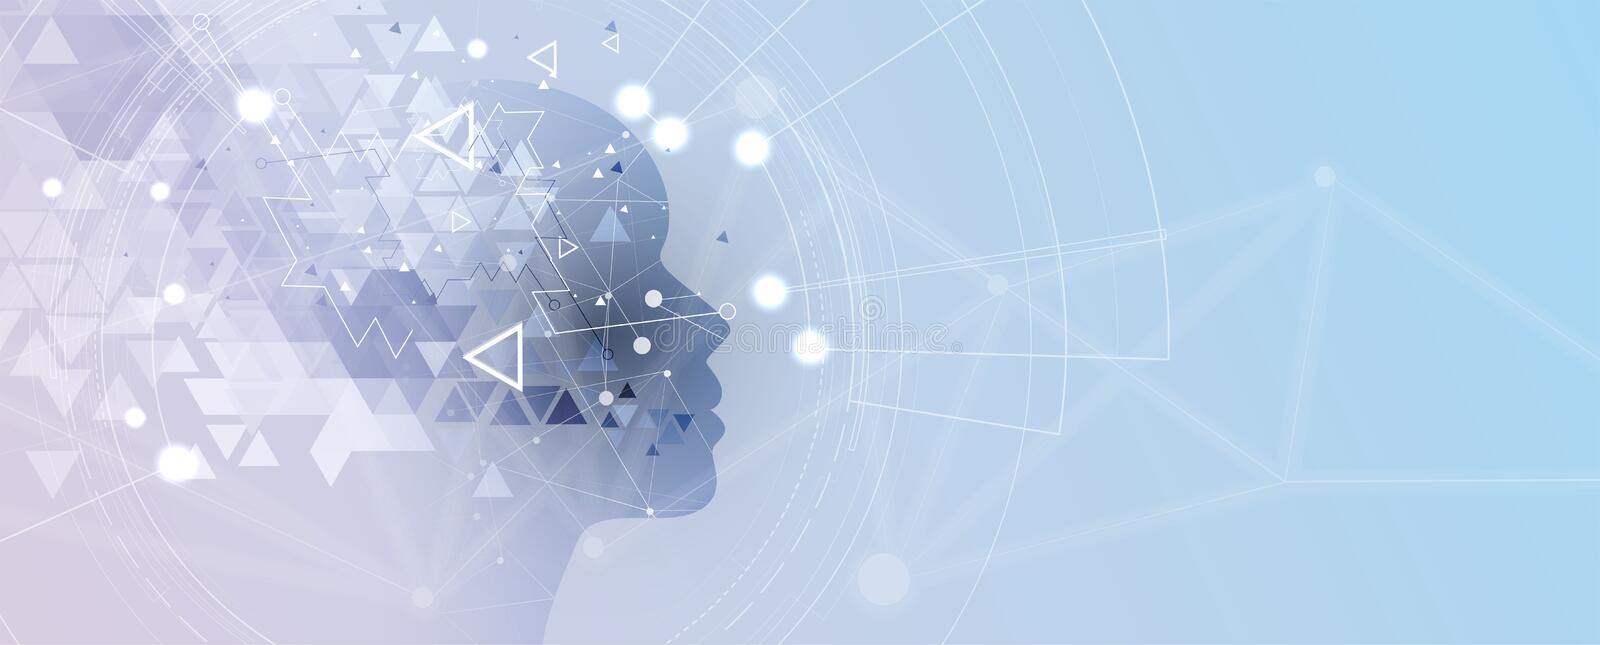 Artificial intelligence. Technology web background. Virtual concept vector illustration